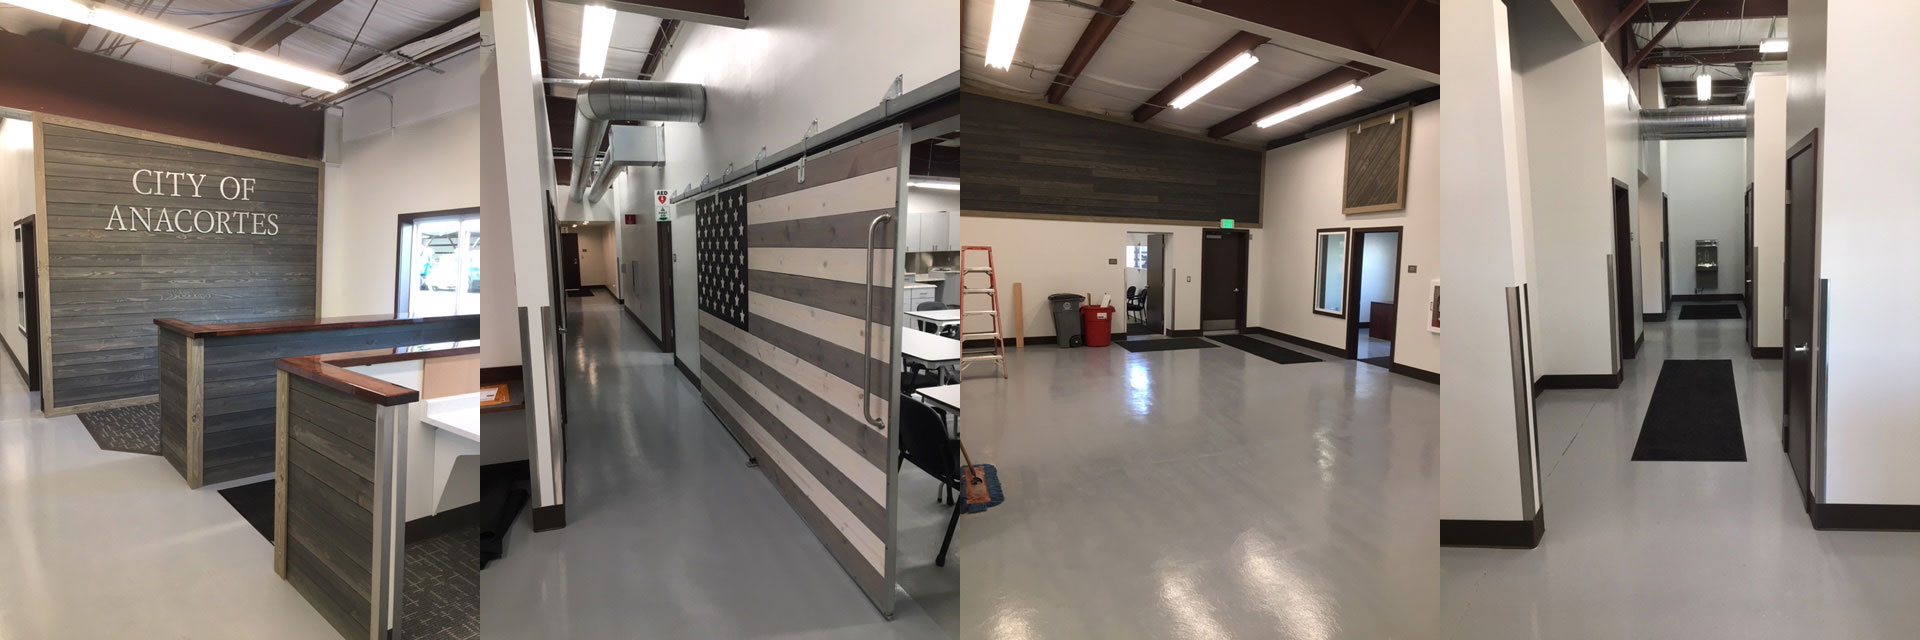 City of Anacortes Operation/Maintenance facility remodel.  LED lighting projected to save $3,000 per year.